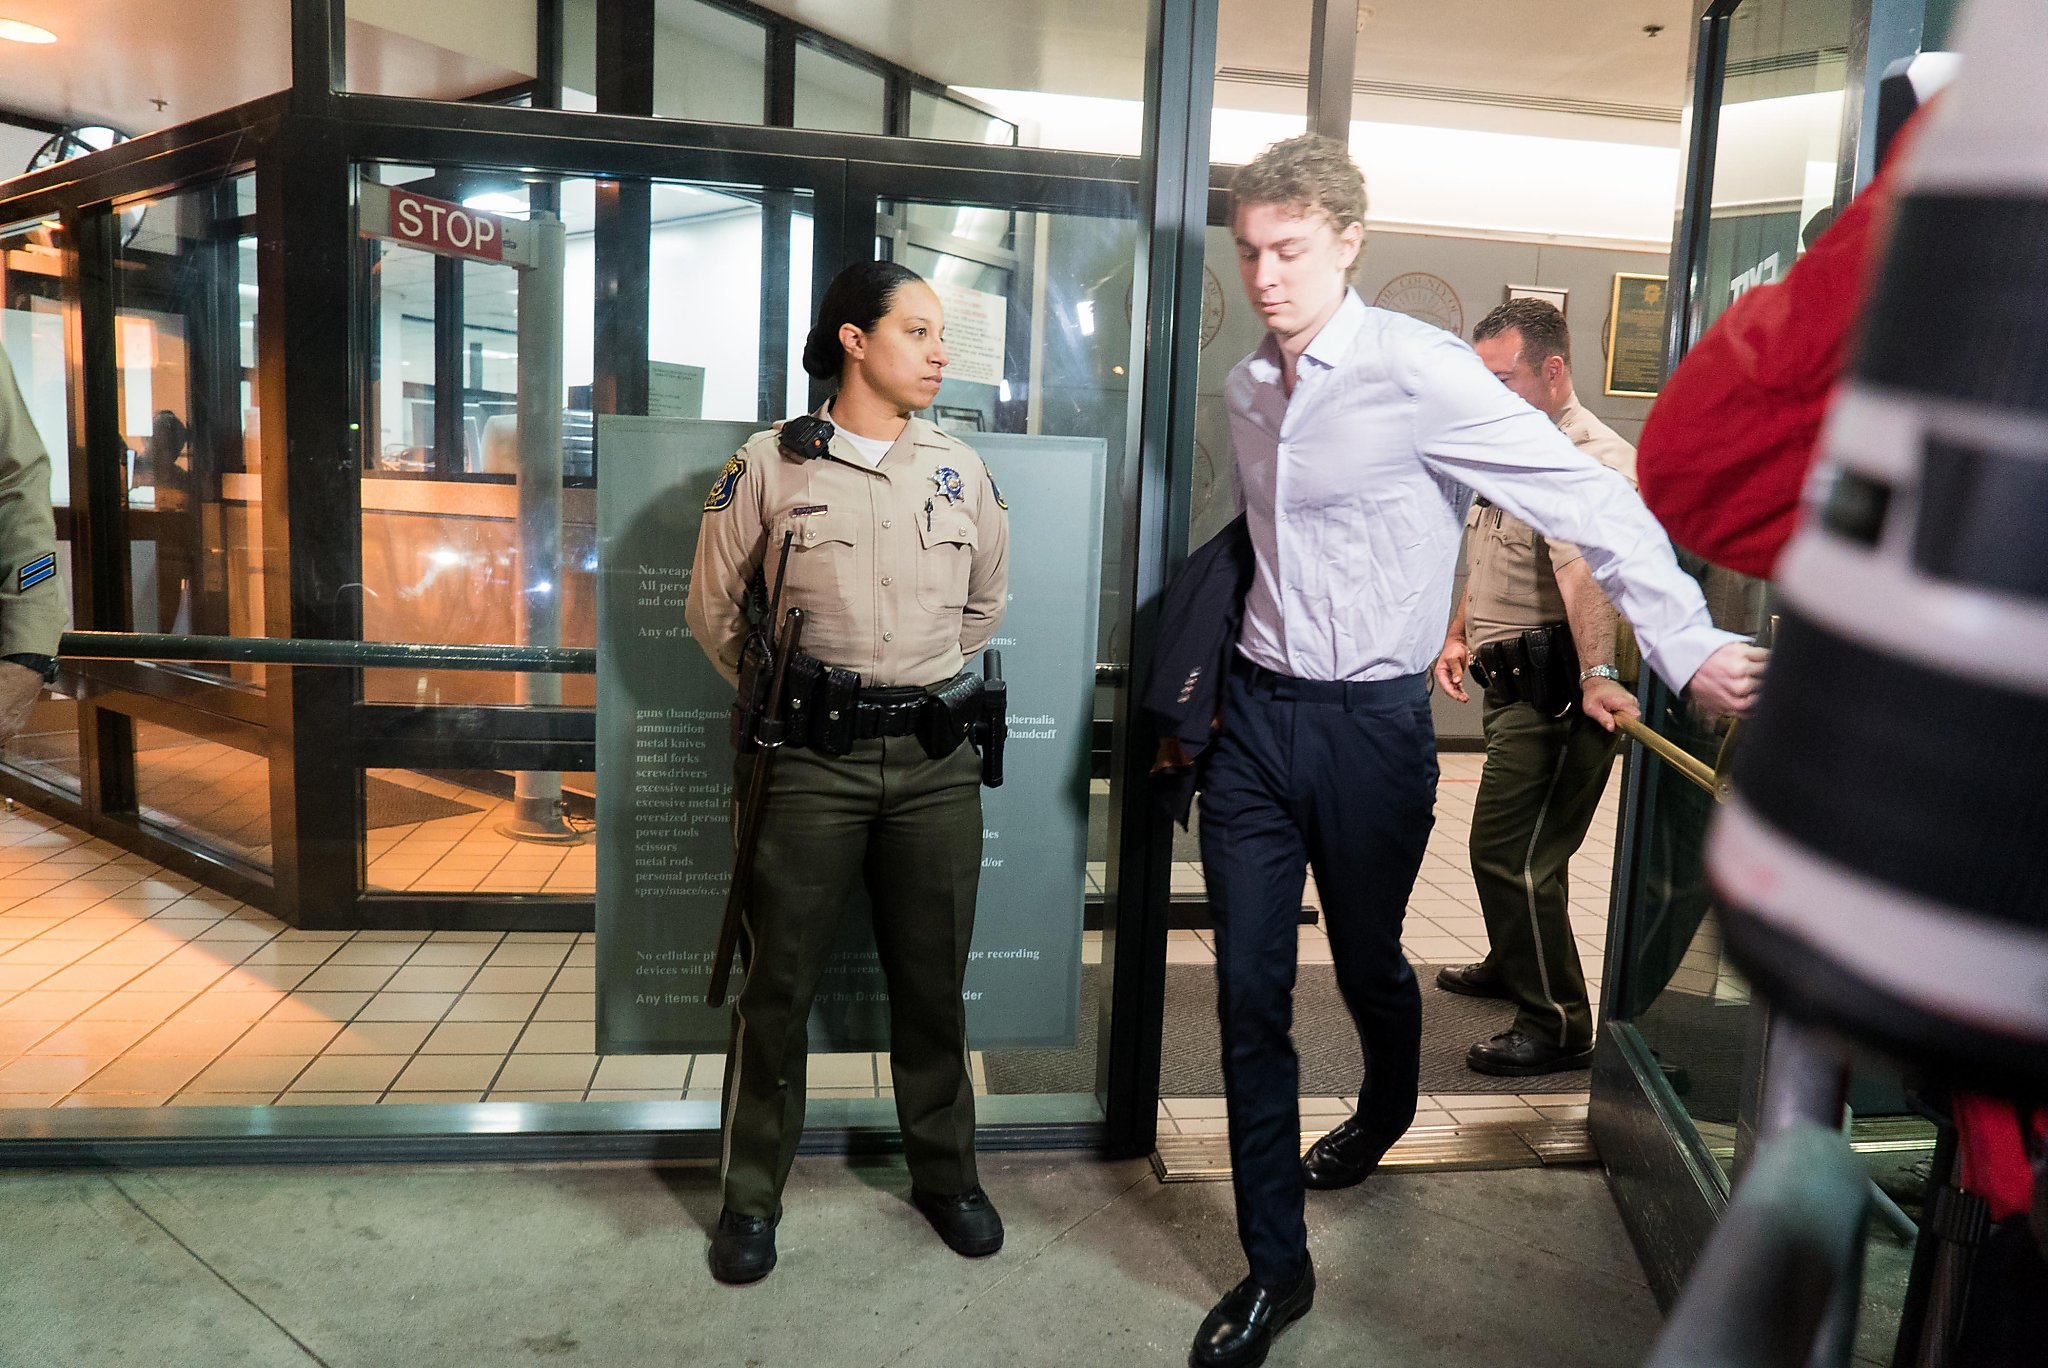 an argument against the brock turners case On tuesday, his attorney was back in court with an argument that brock turner's conviction should be overturned attorney eric multhaup used a new word he hopes will ultimately overturn turner's .